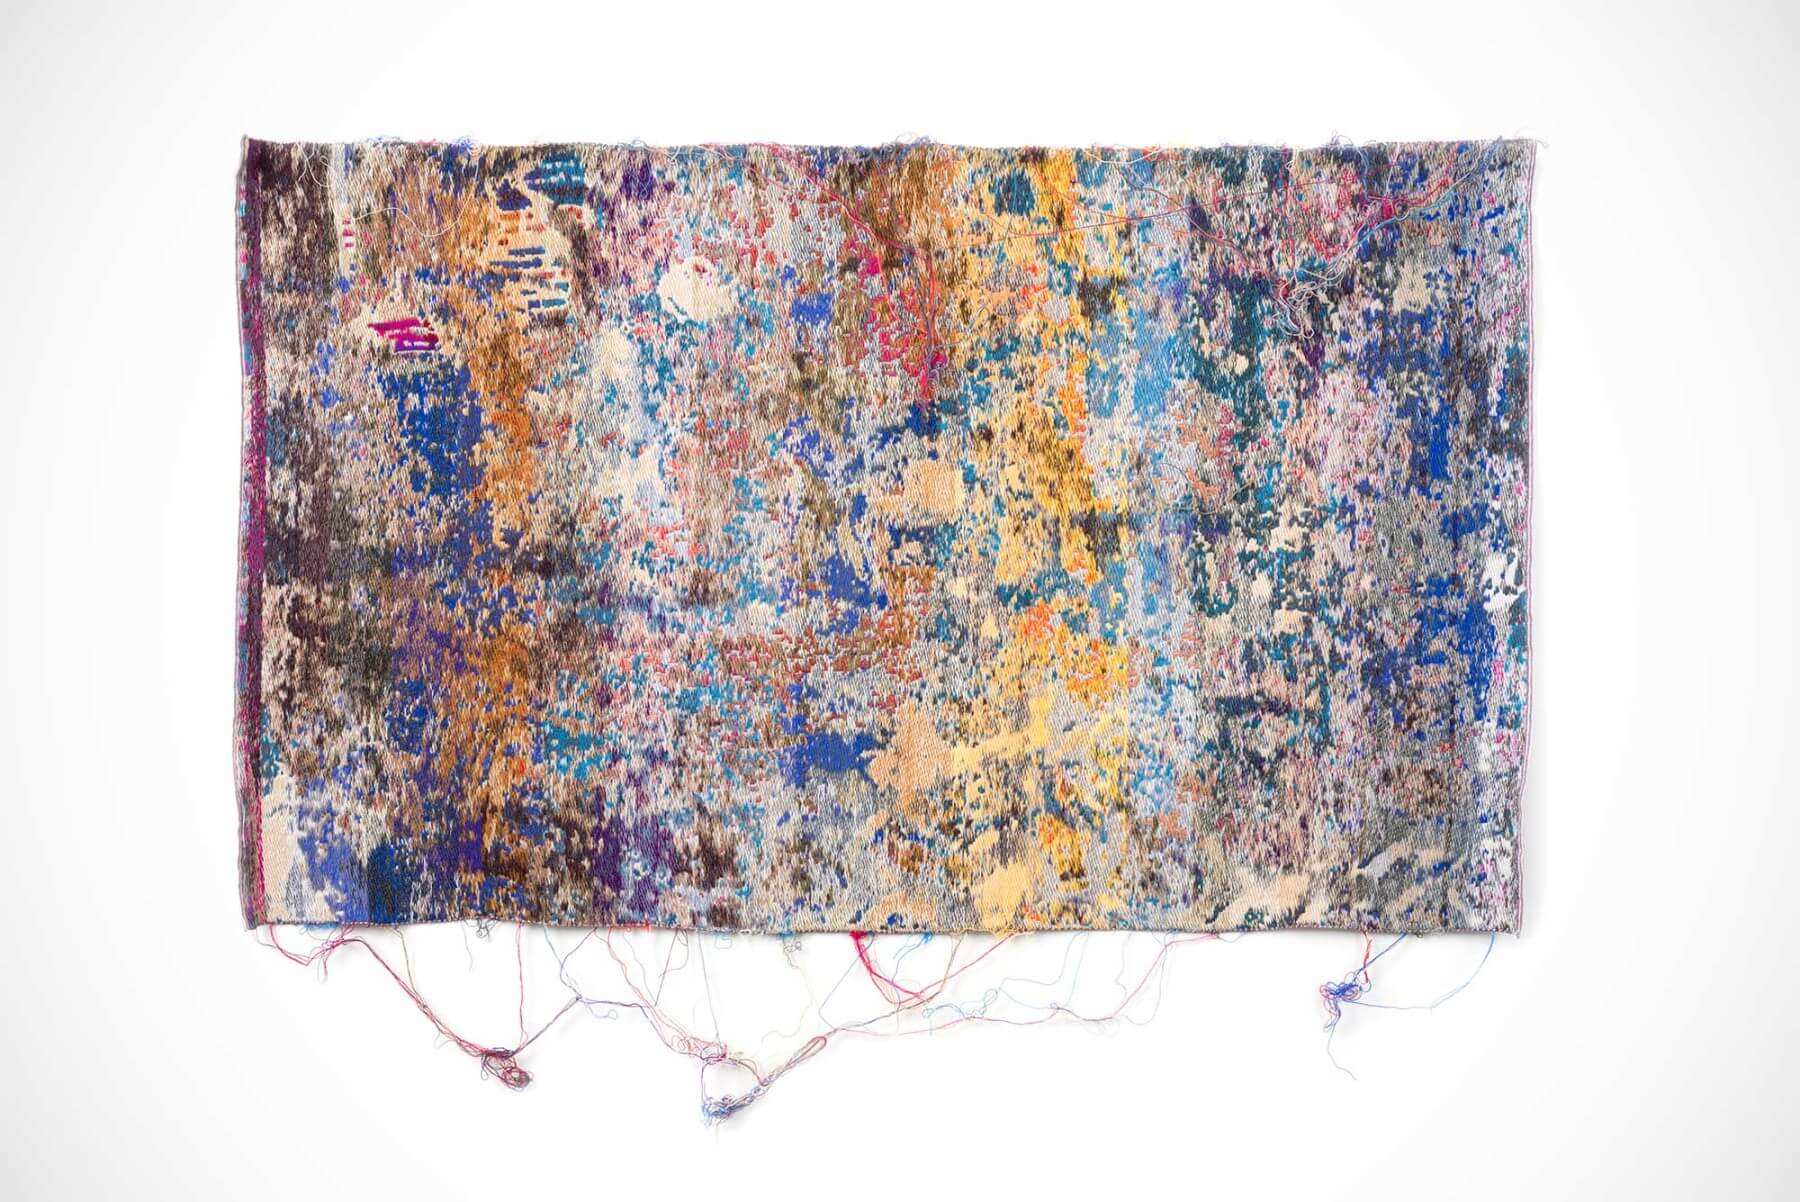 Laura Letinsky and John Paul Morabito |   Blukarliwhidandagz - wall tapestry